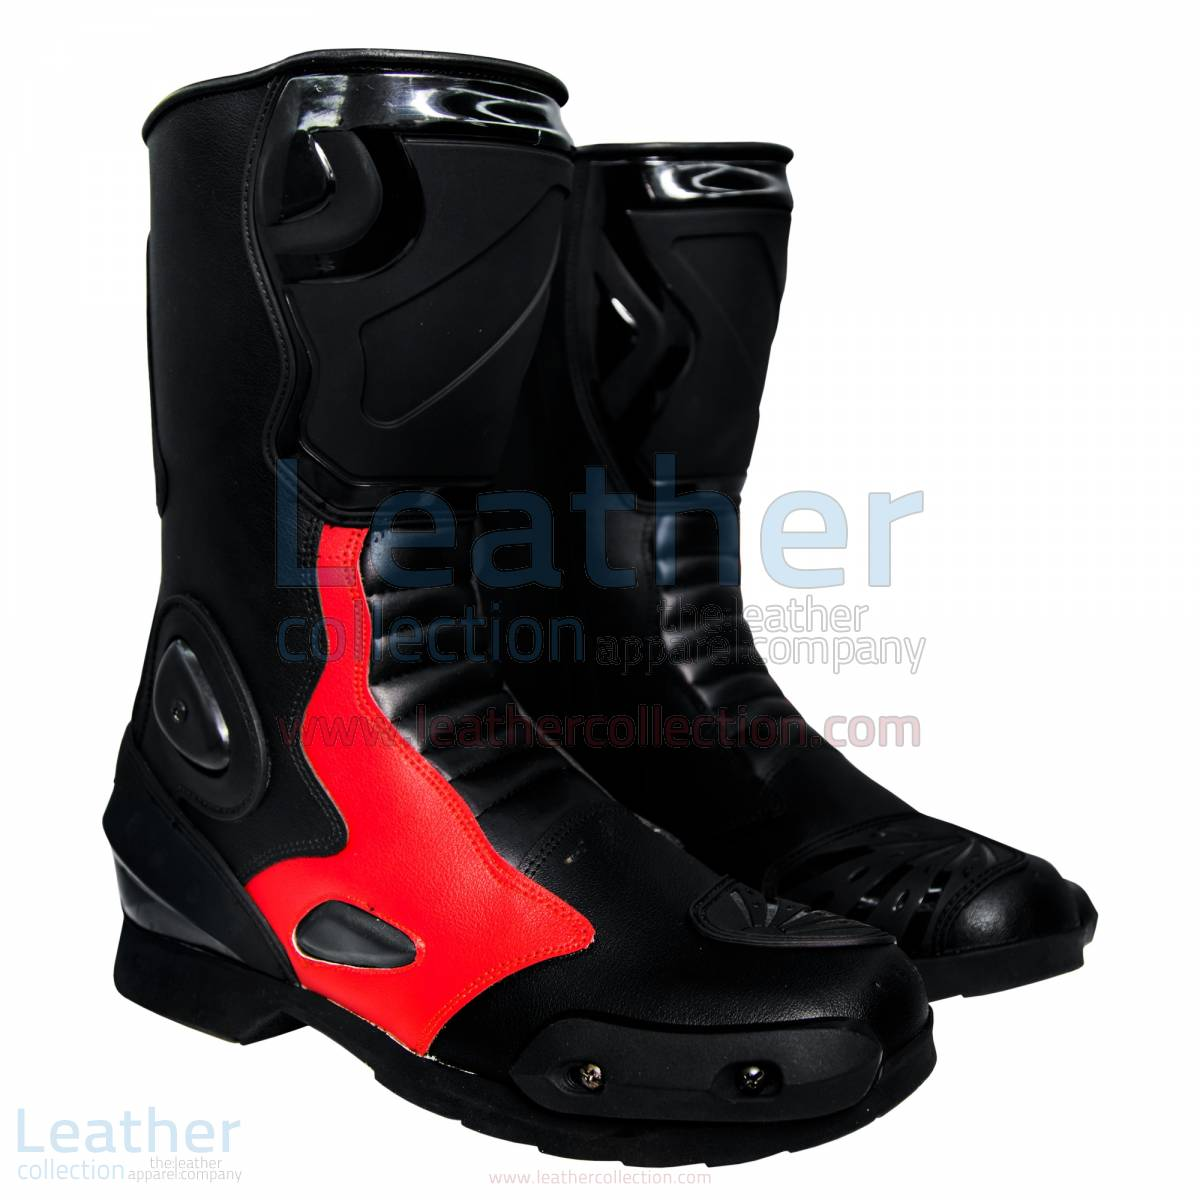 Silverstone Motorcycle Race Boots